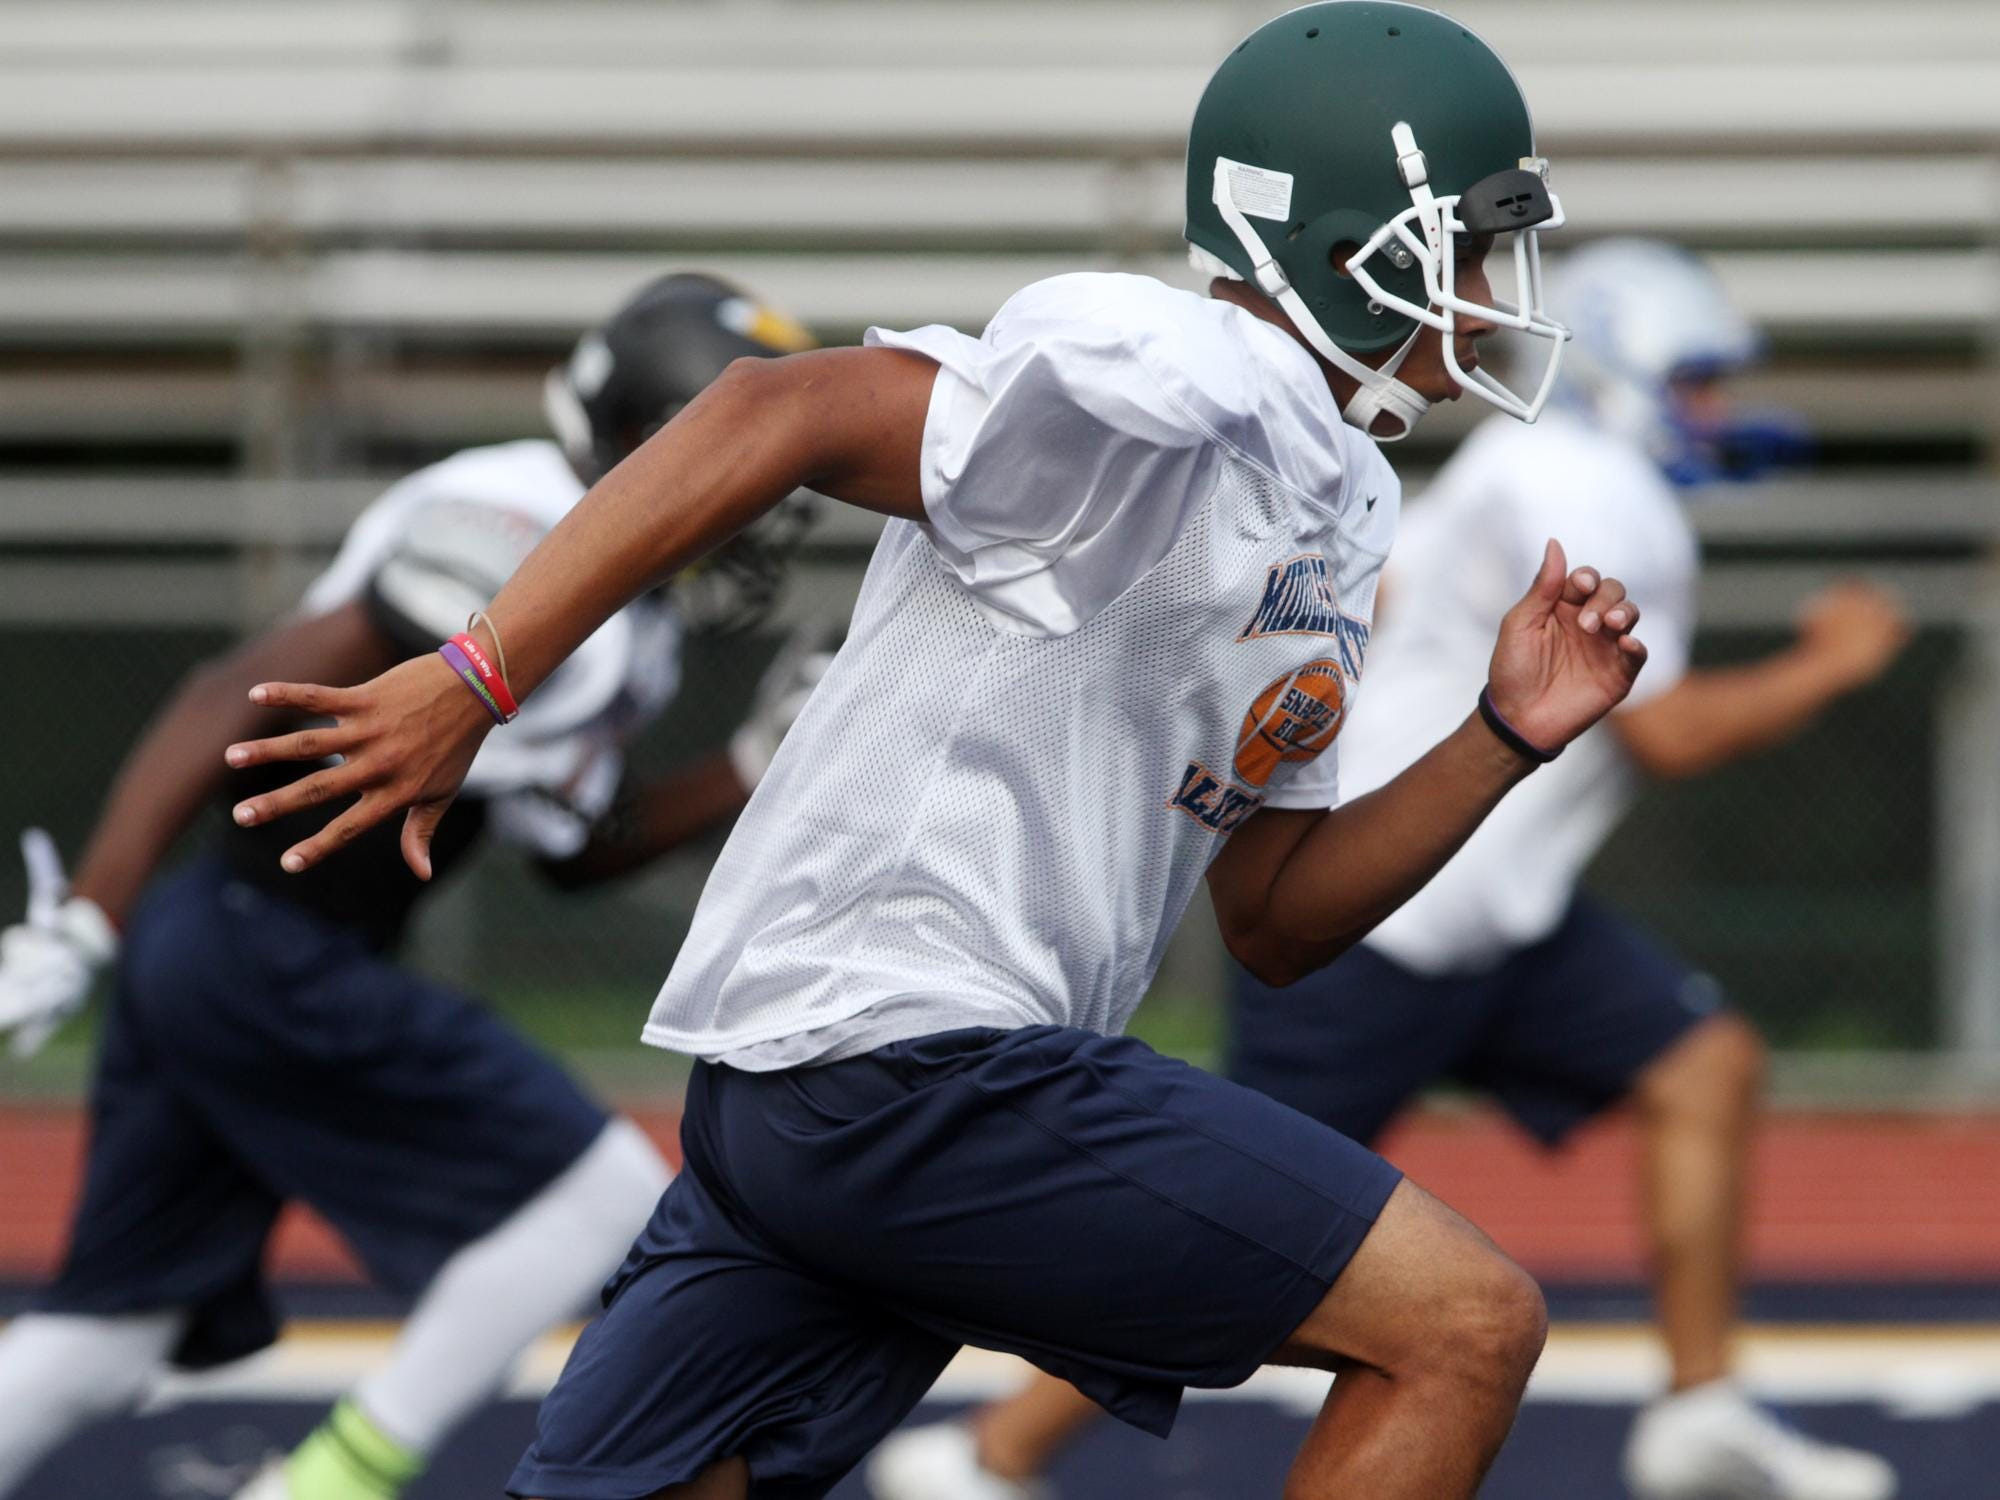 Javon Hicks of St Joseph works out during the opening practice for the Middlesex County all-star football players participating in the Snapple Bowl, Monday, July 6, 2015, at Colonia High School in Woodbridge, NJ.